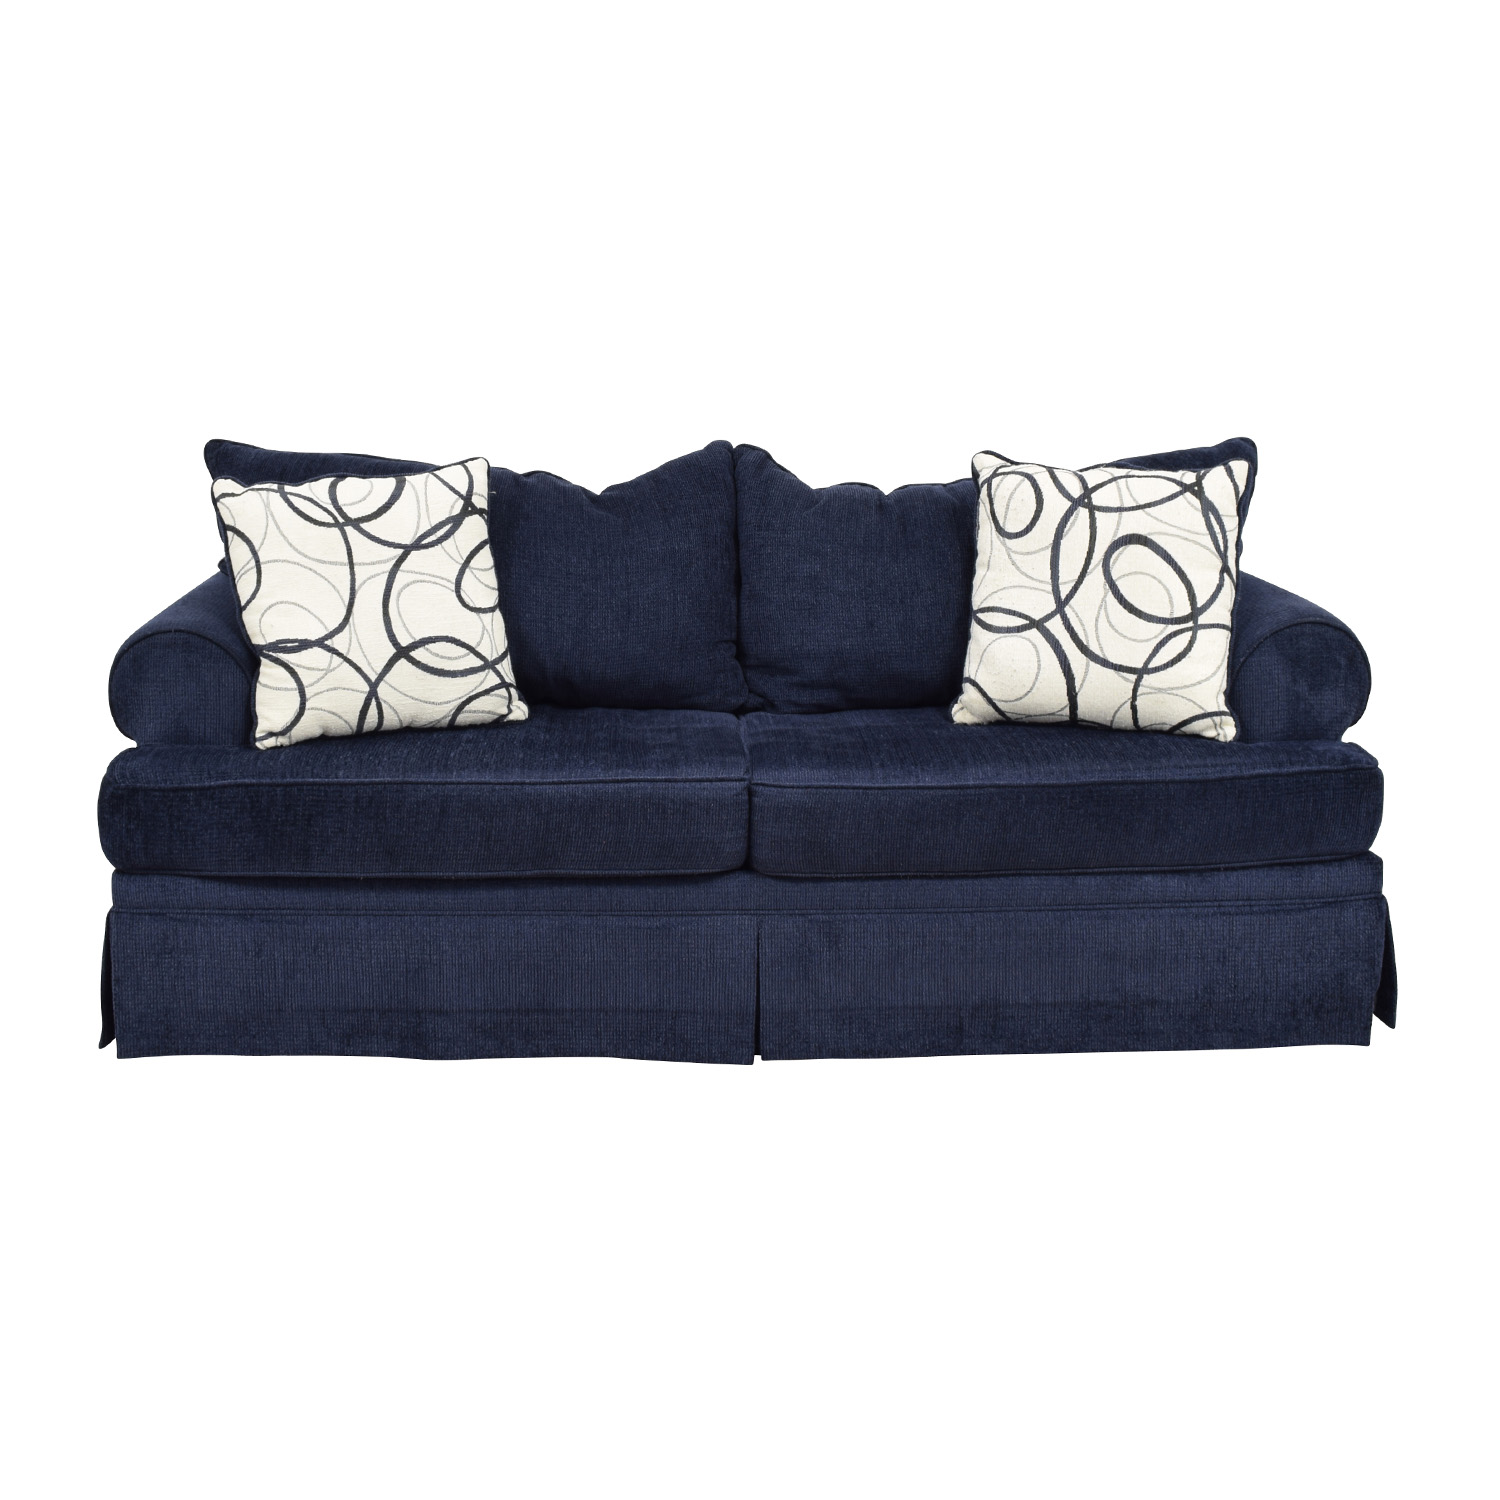 Exceptional Bobs Furniture Bobs Furniture Deep Blue Sofa On Sale ...